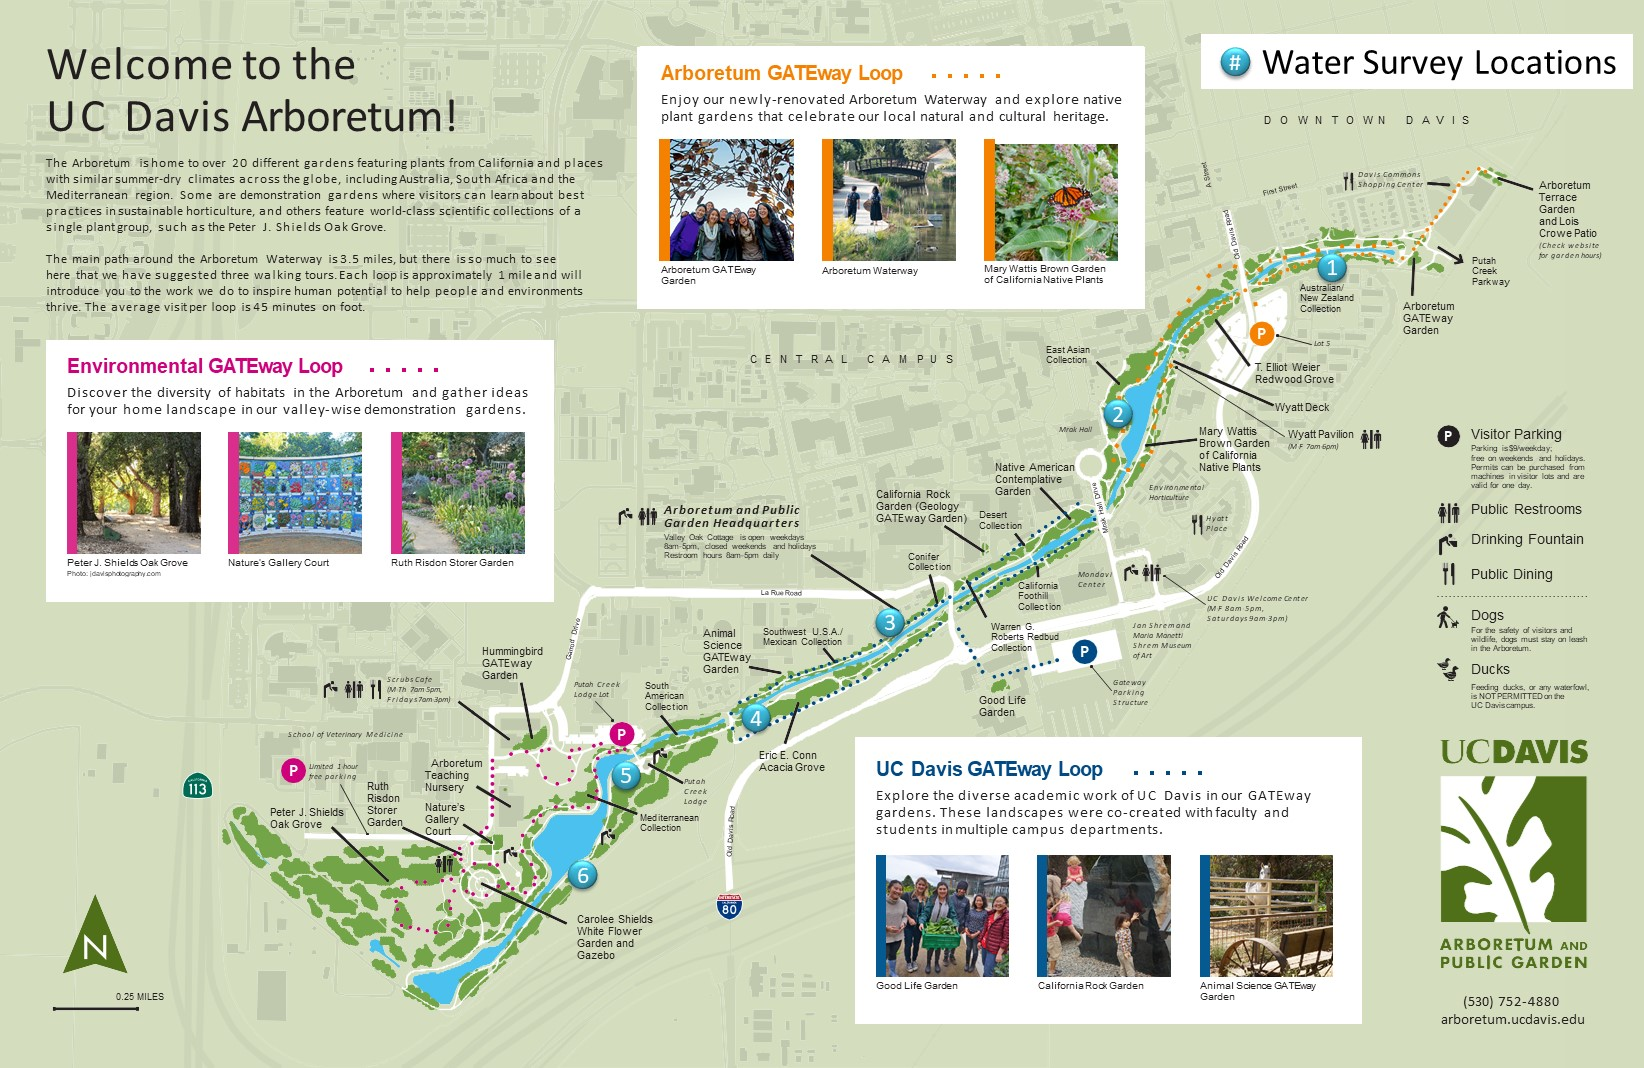 Community scientists needed to monitor the Arboretum Waterway | UC on